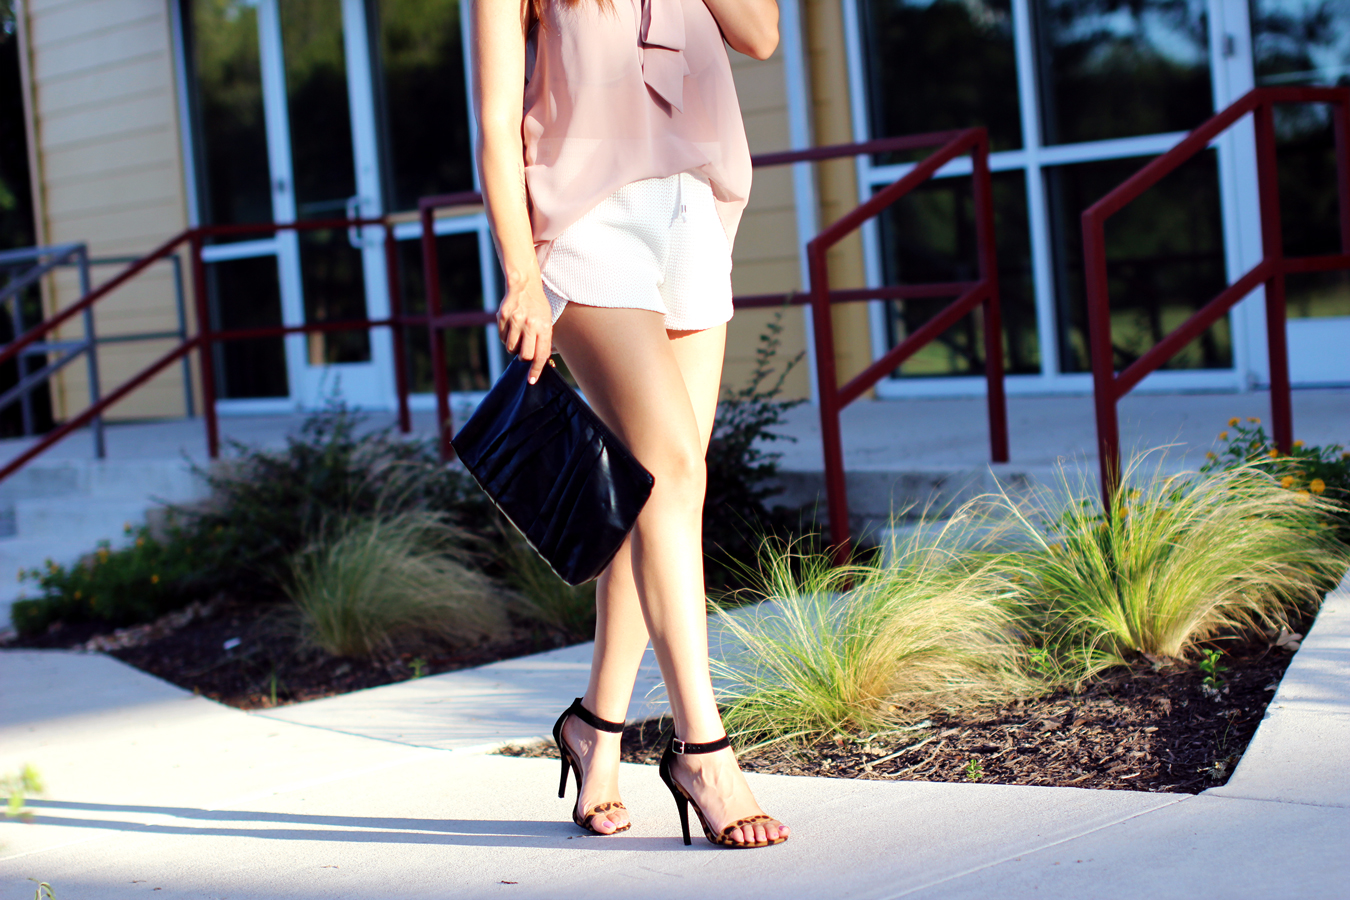 WHITE-SHORTS-ATHLETIC-NEUTRALS-GLAM-STYLIST-CLASSIC-SUMMER-STYLE-FIXIN-TO-THRILL-AUSTIN-FASHION-BLOG-TEXAS-8